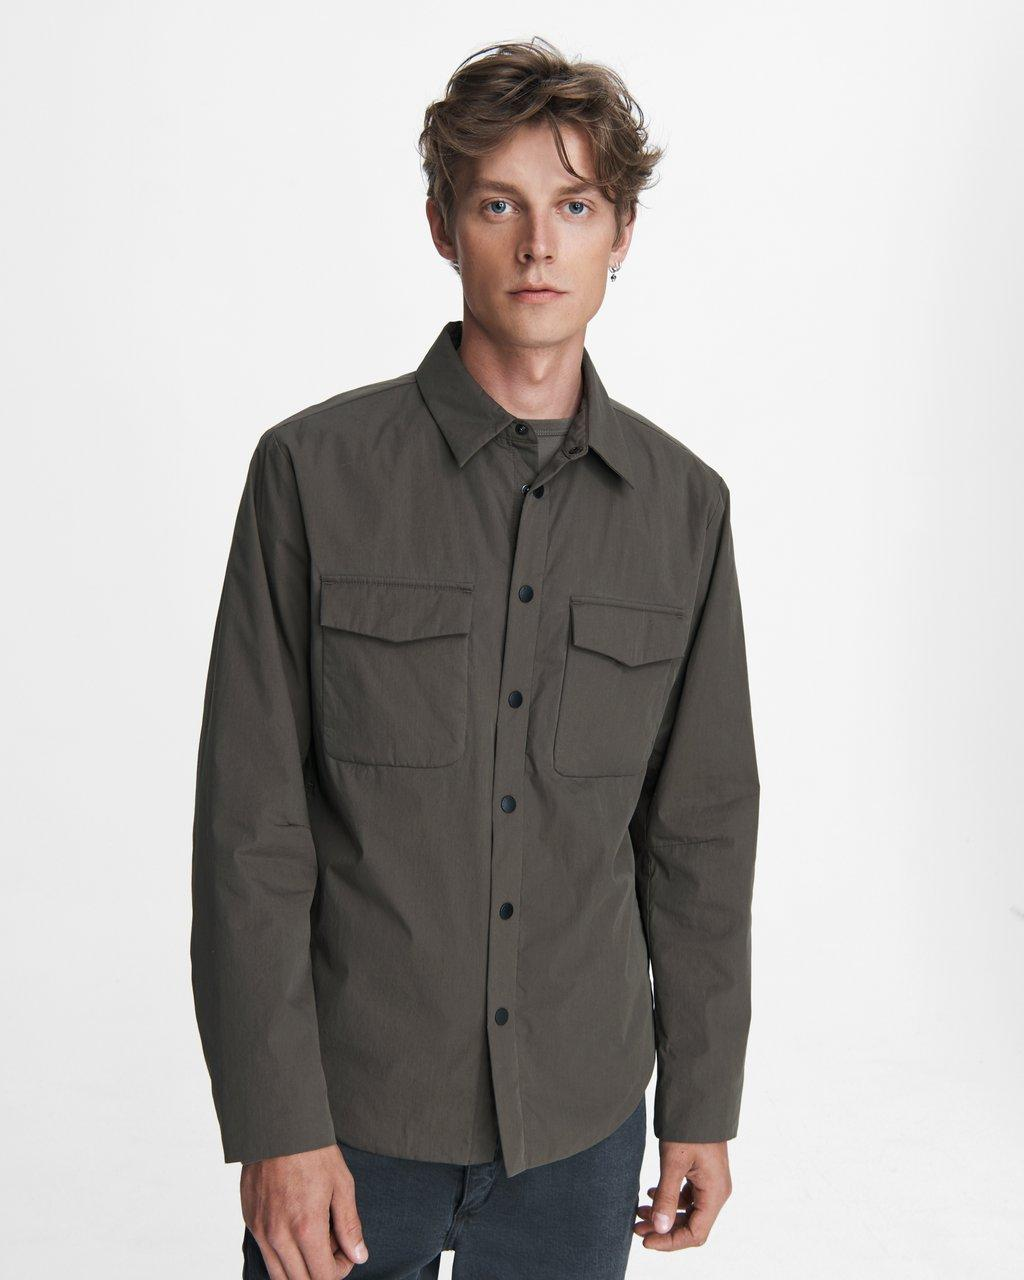 M42 Cotton Blend Jack Shirt Jacket